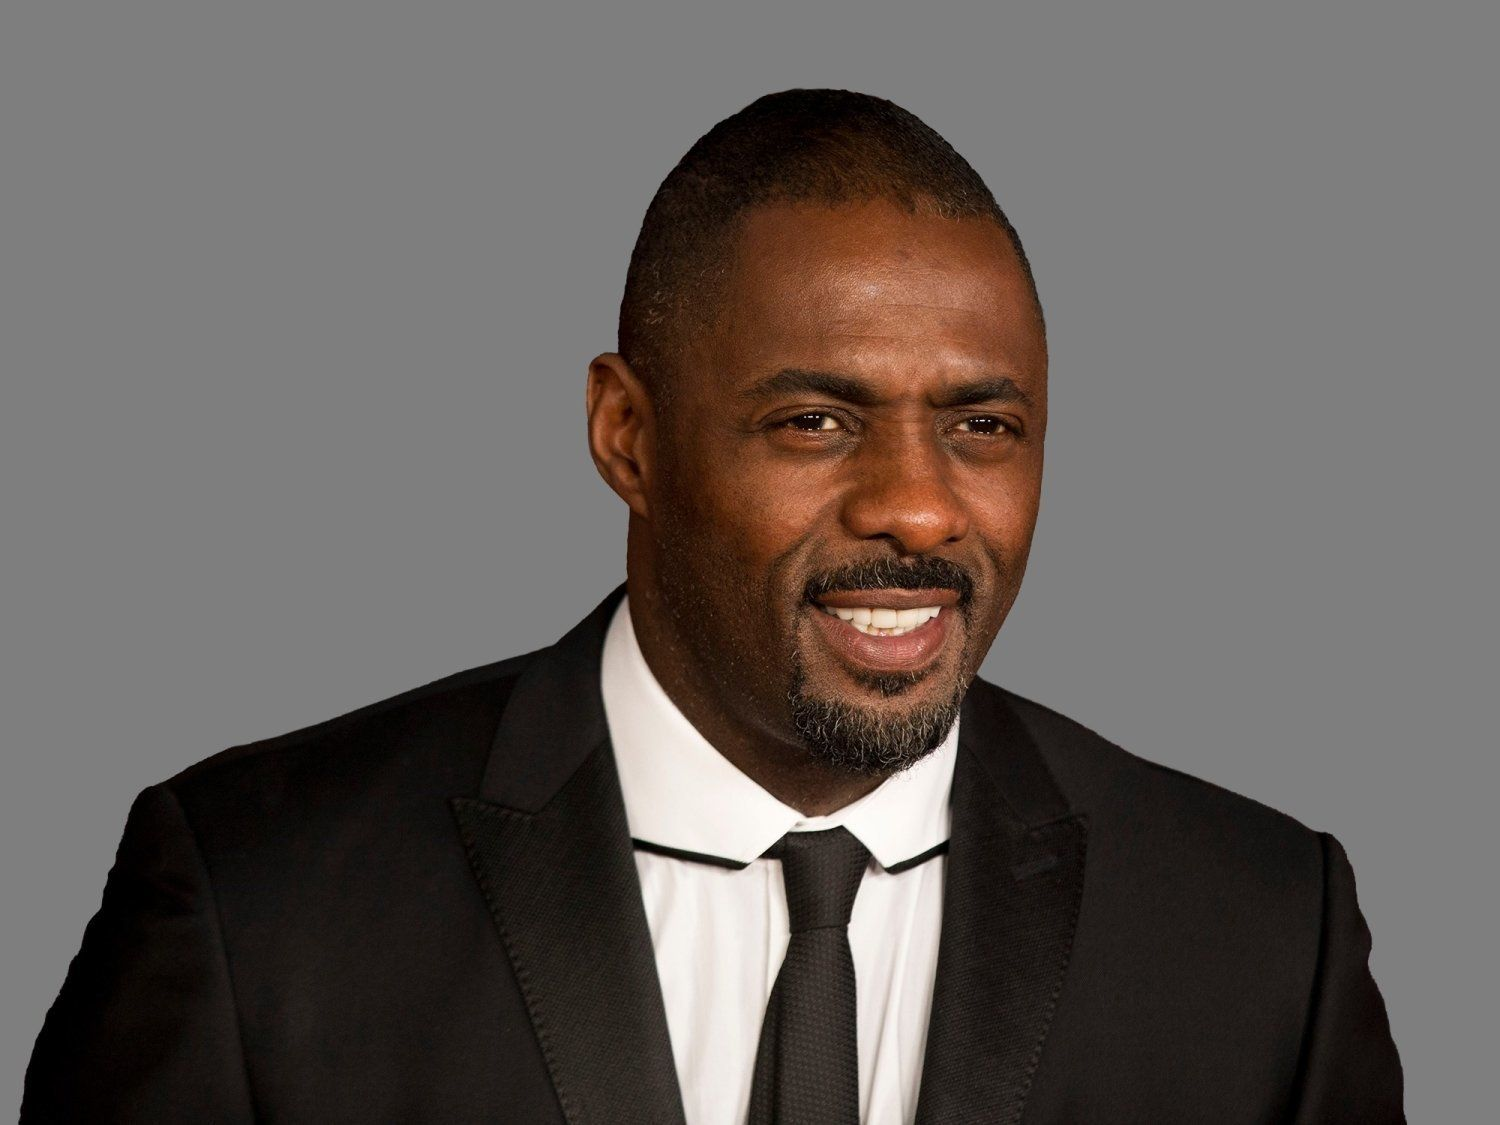 Idris Elba headshot, actor, graphic element on gray